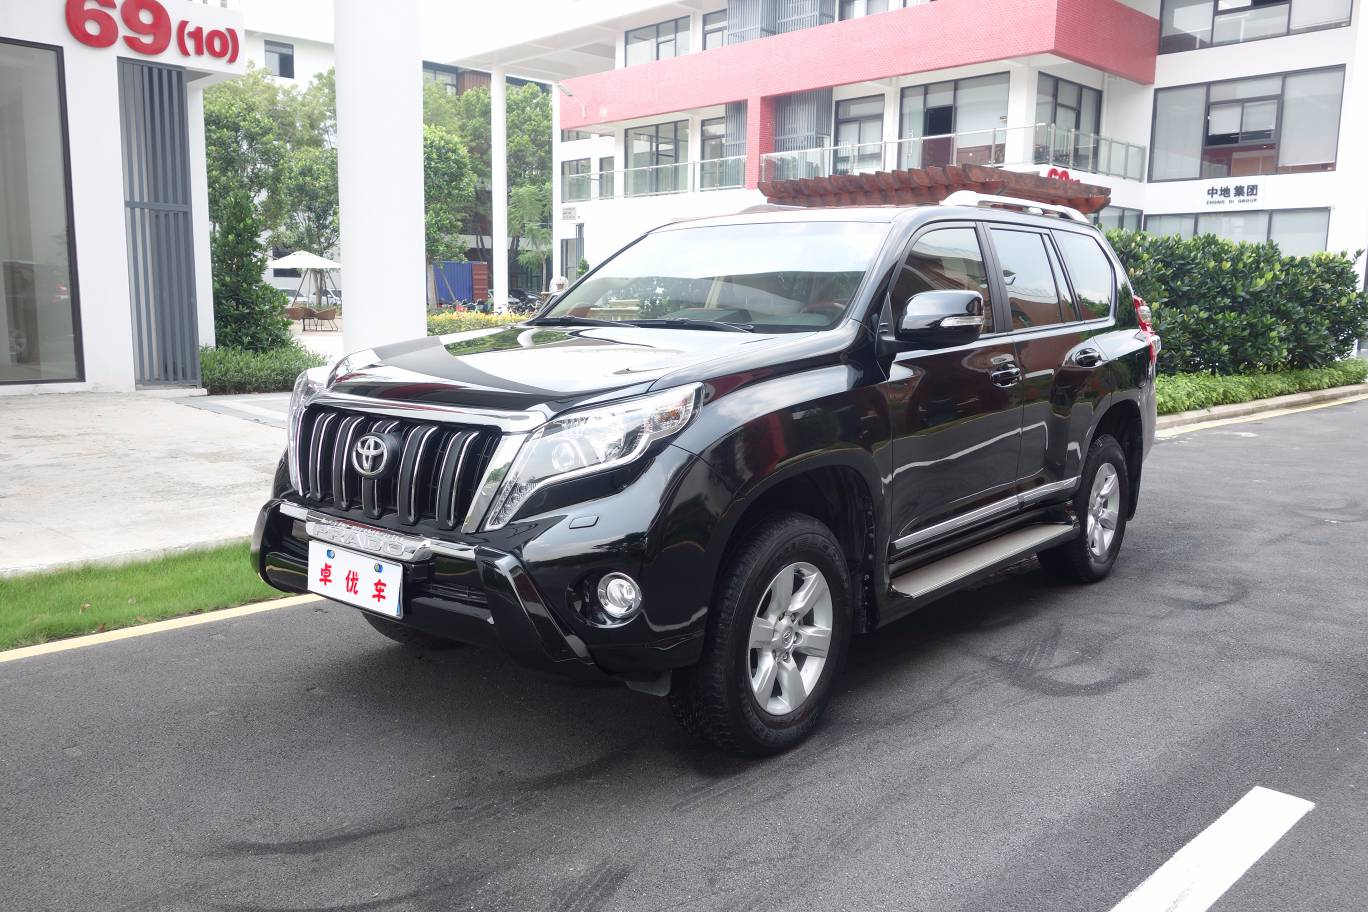 TOYOTA Prado 2014 models 2.7L (parallel imports) Middle East Edition